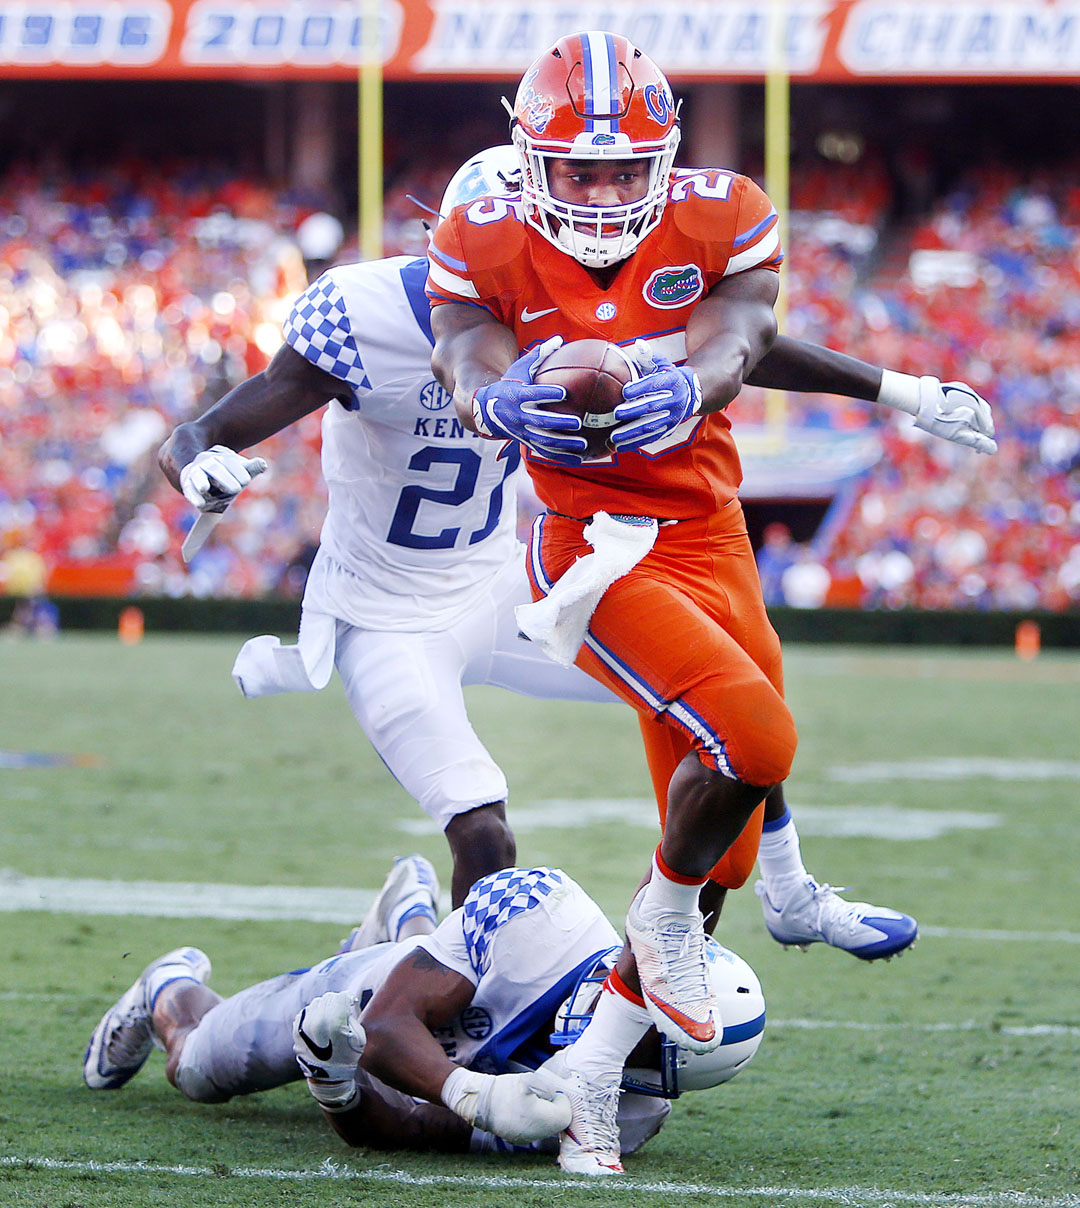 Florida Gators running back Jordan Scarlett (25) runs in for a touchdown against the Kentucky Wildcats during the second half at Steve Spurrier Florida Field at Ben Hill Griffin Stadium on Saturday, Sept. 10, 2016 in Gainesville, FL. Florida defeated Kentucky 45-7. Matt Stamey/Gainesville Sun